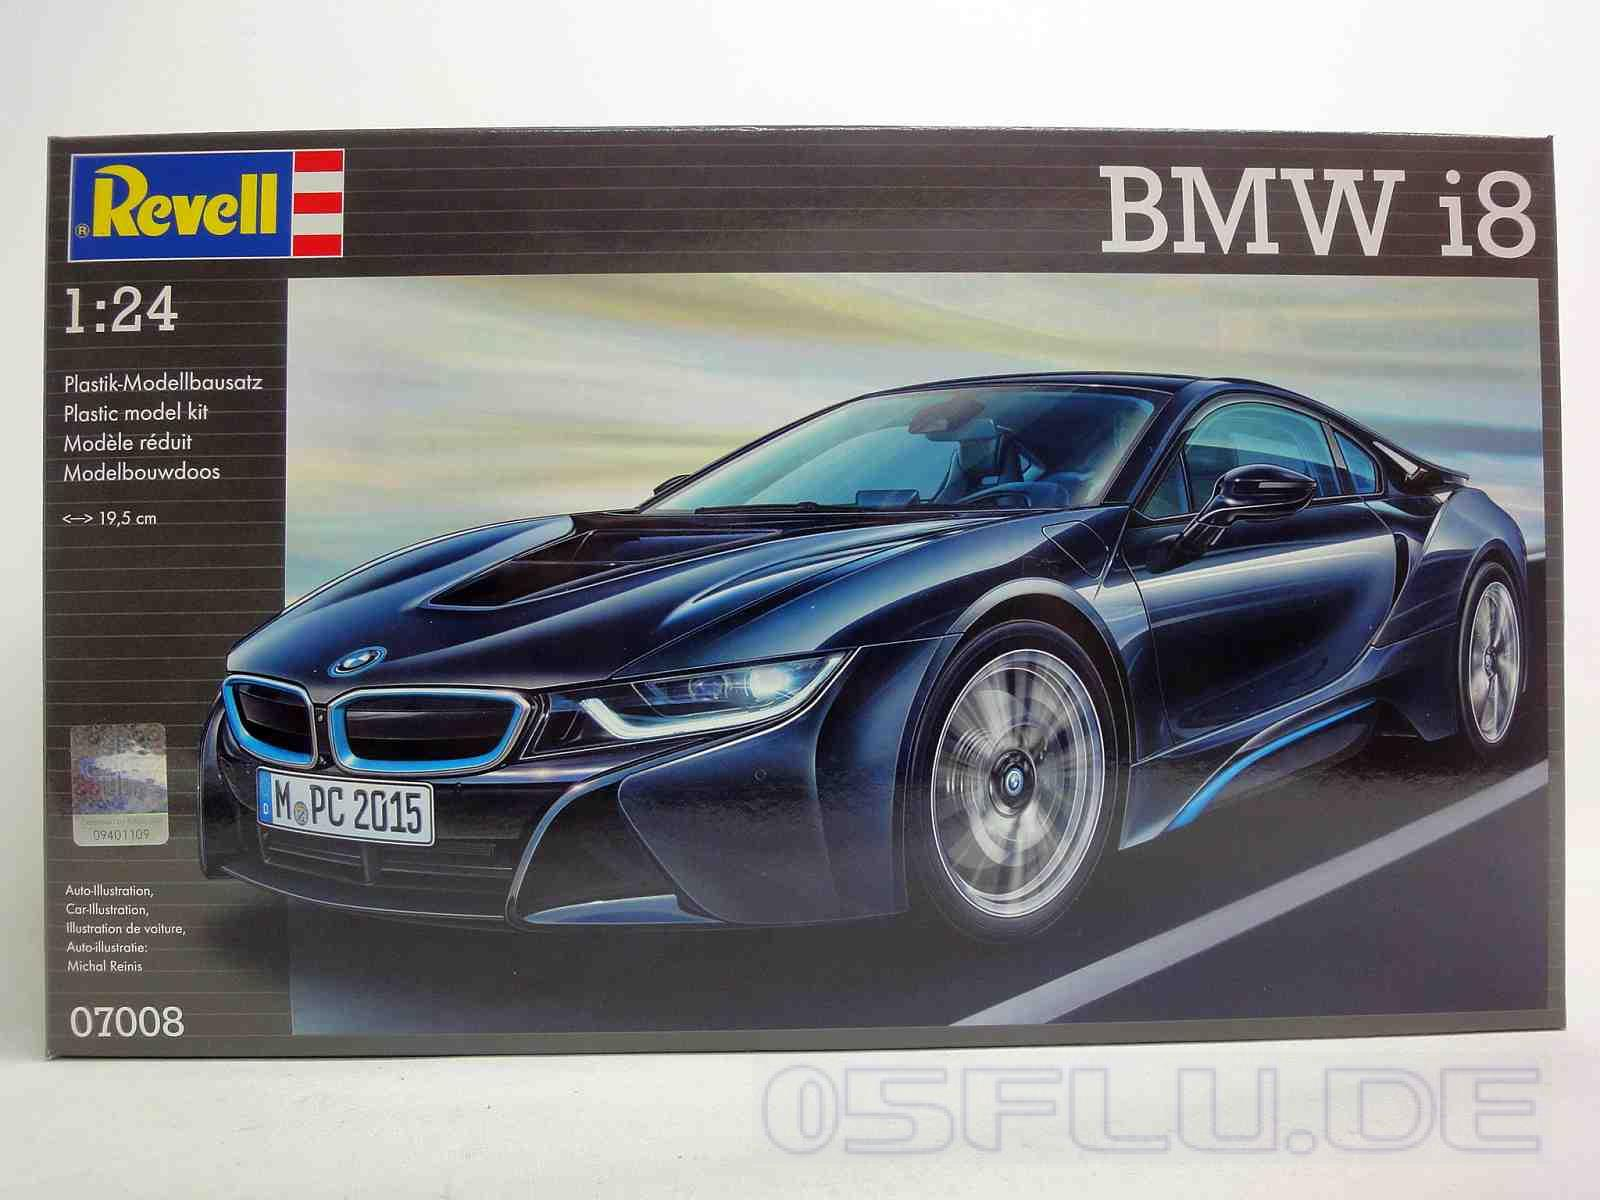 revell 1 24 07008 bmw i8 neu ebay. Black Bedroom Furniture Sets. Home Design Ideas